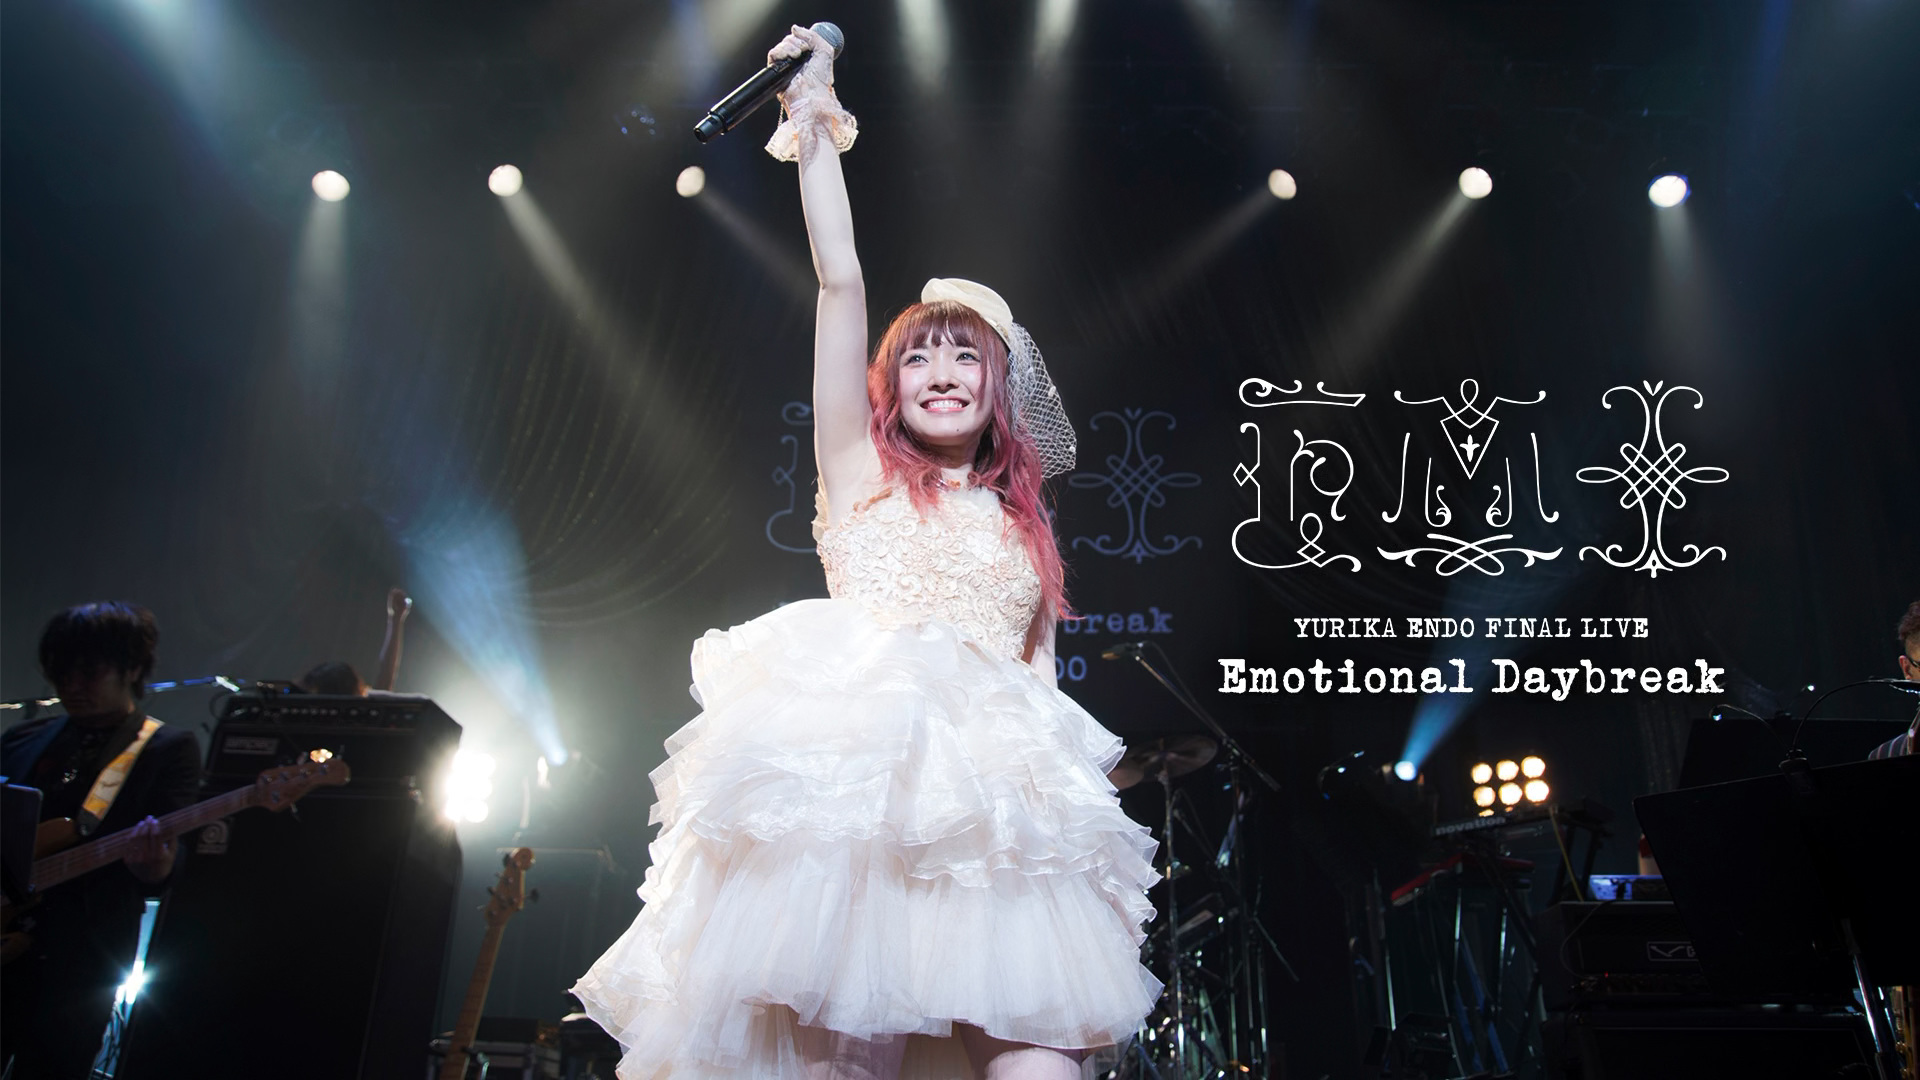 远藤祐里香 / YURIKA ENDO FINAL LIVE -Emotional Daybreak- [BDRip 1080p HEVC-10bit FLAC]